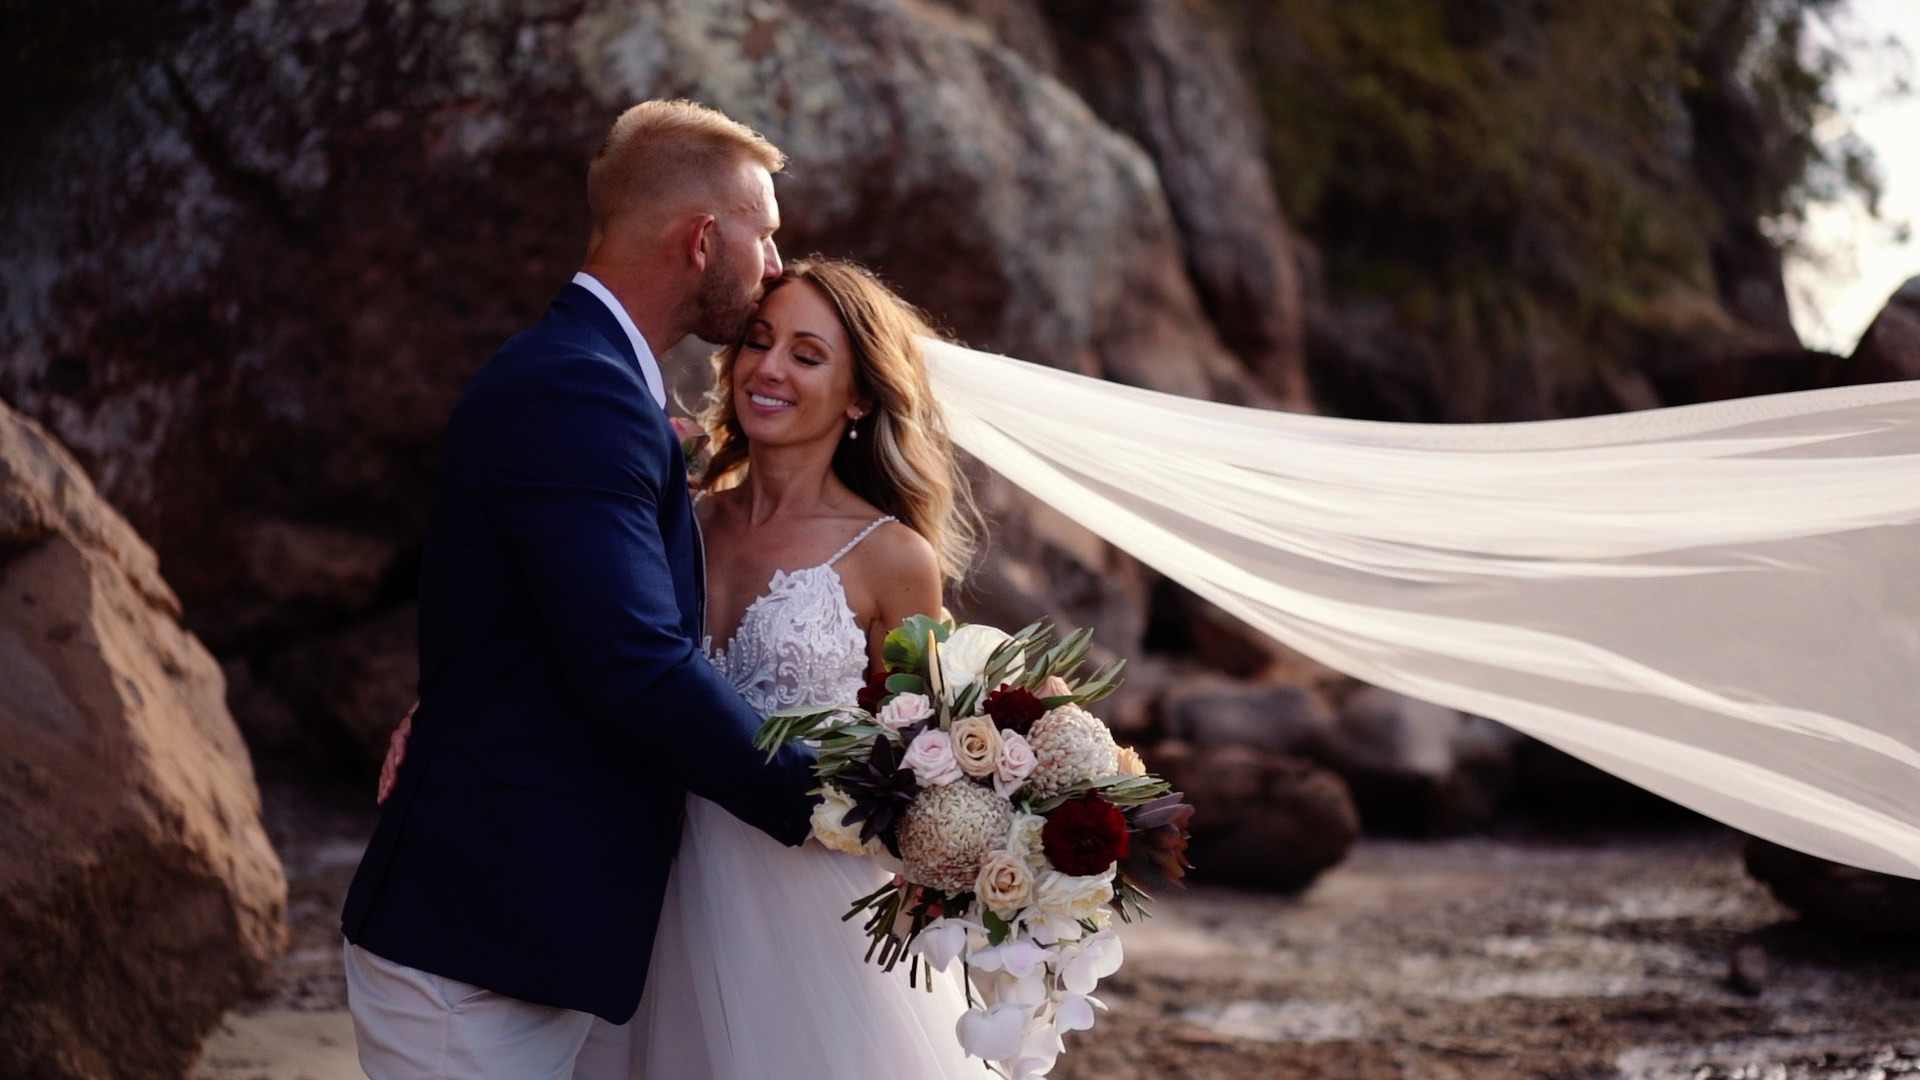 Kristen + Kirt | Port Stephens, New South Wales, Australia | The Anchorage